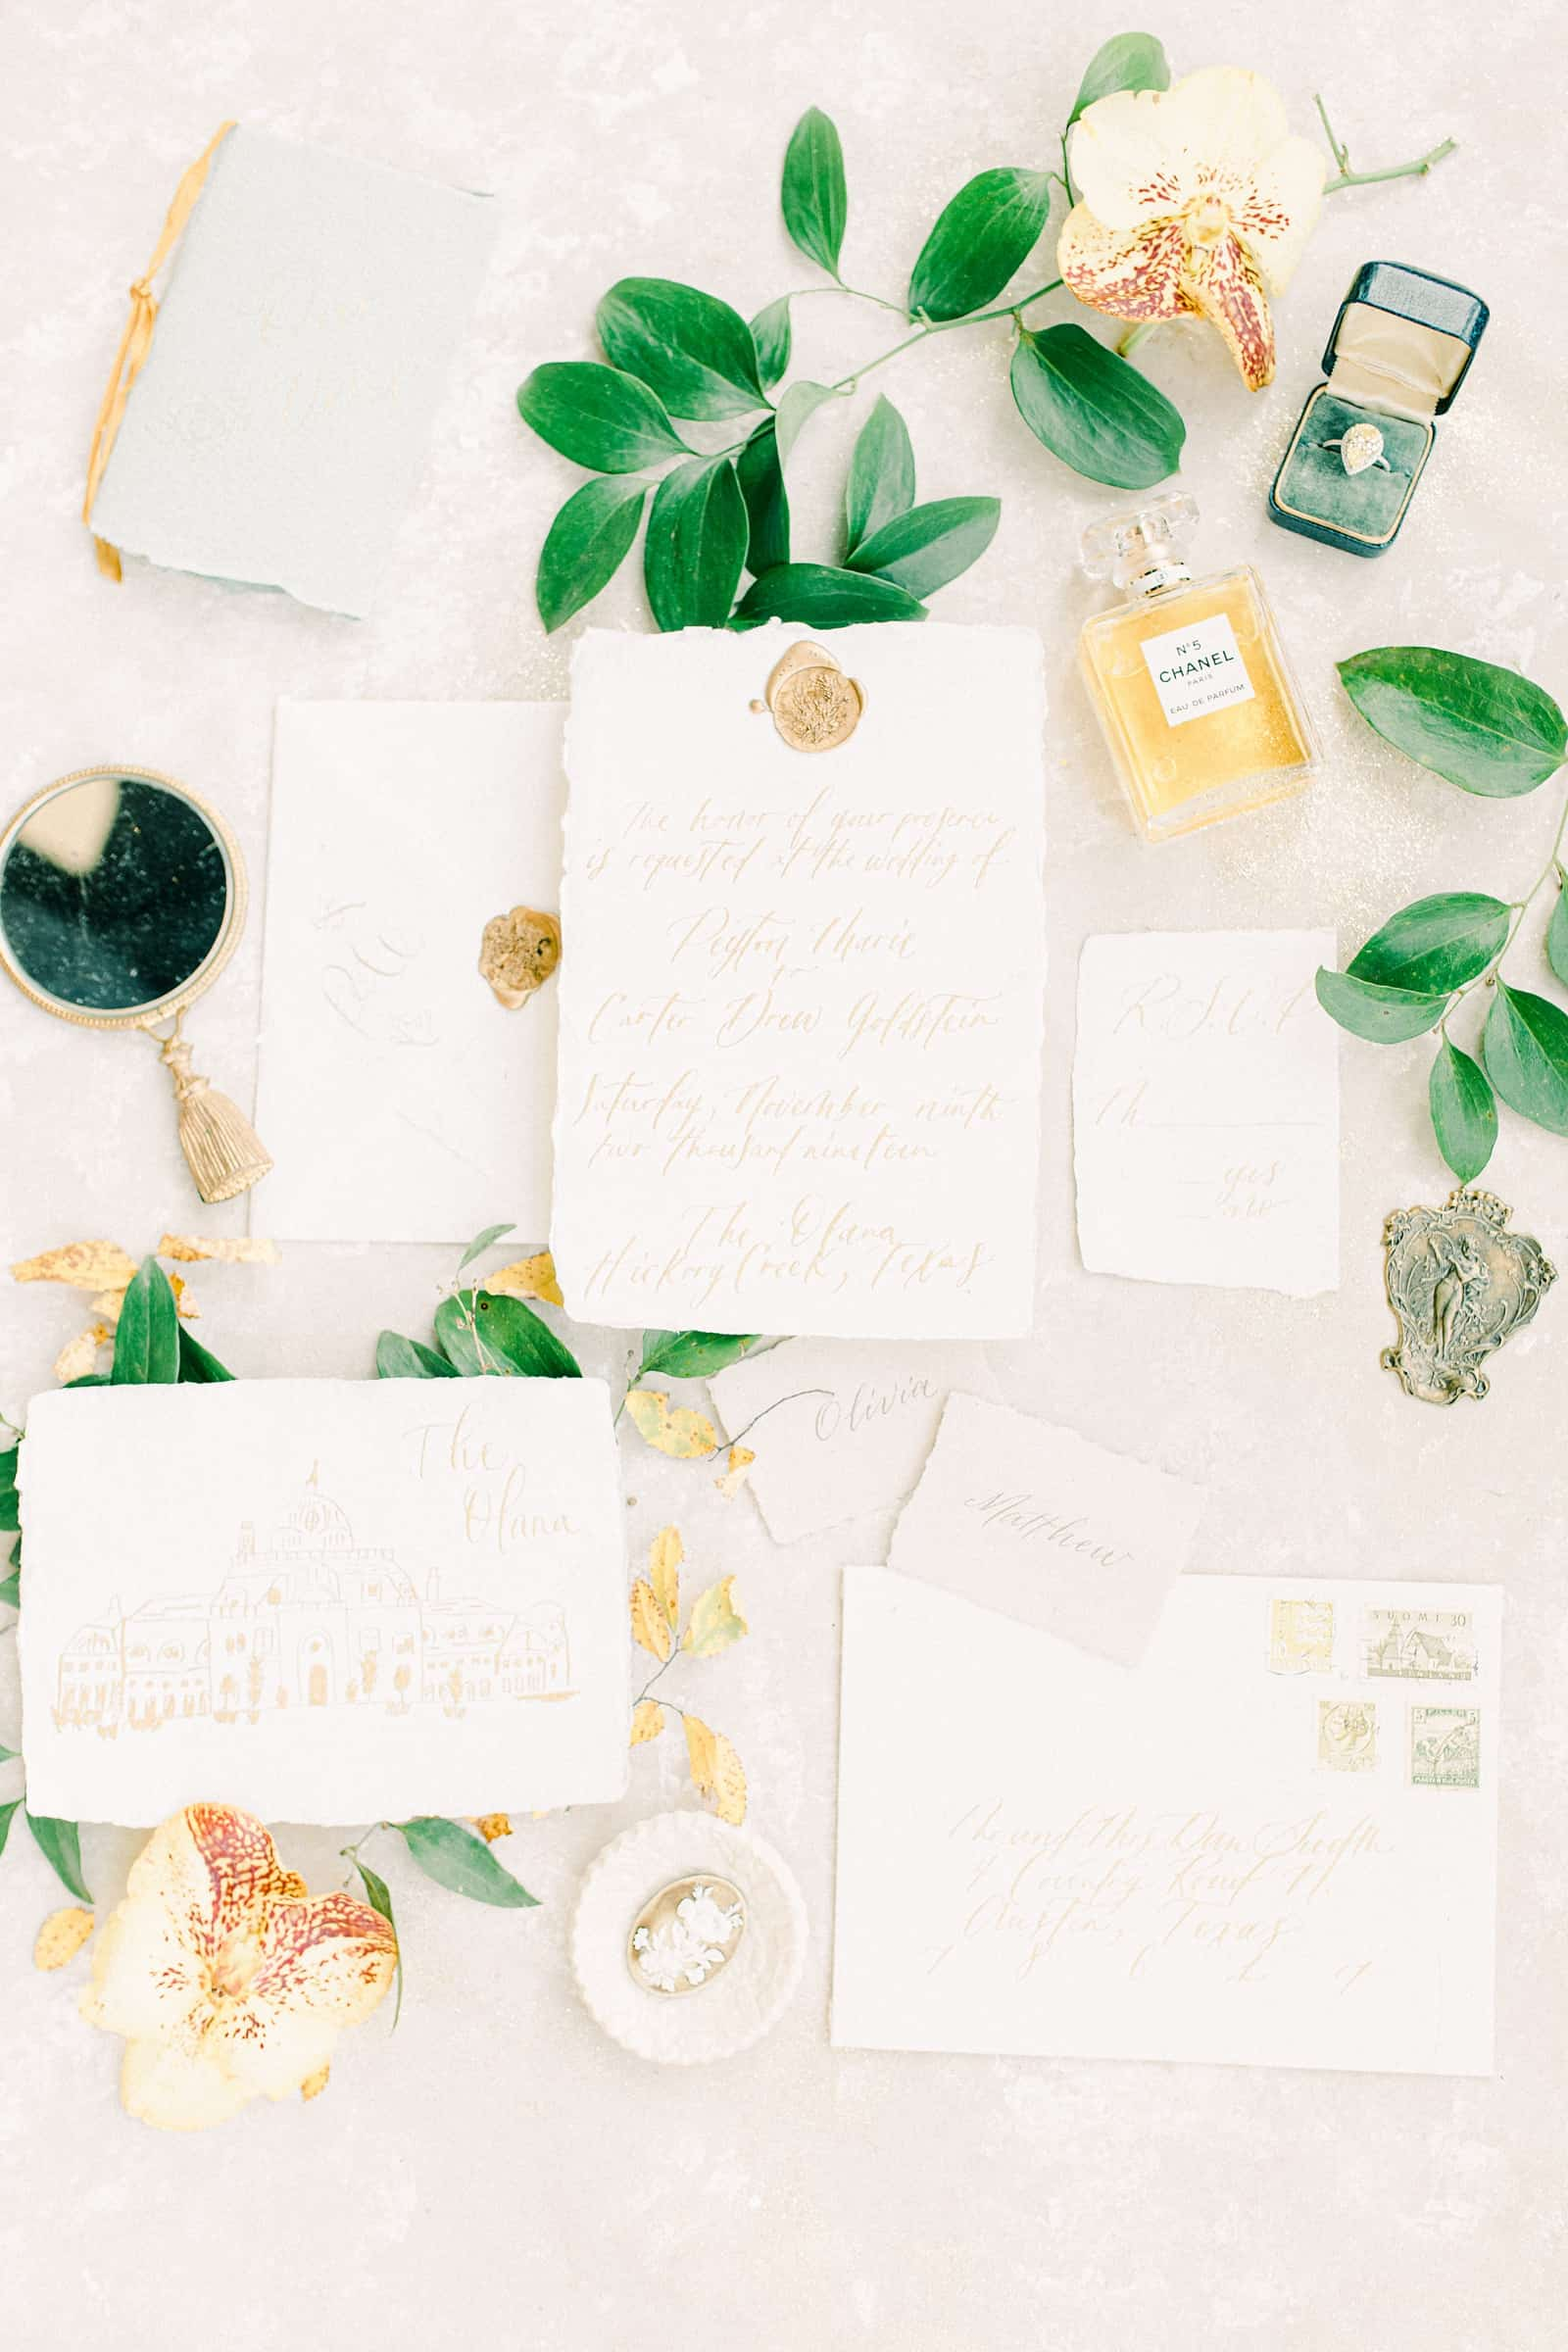 Fine art wedding invitations with calligraphy and gold wax seal